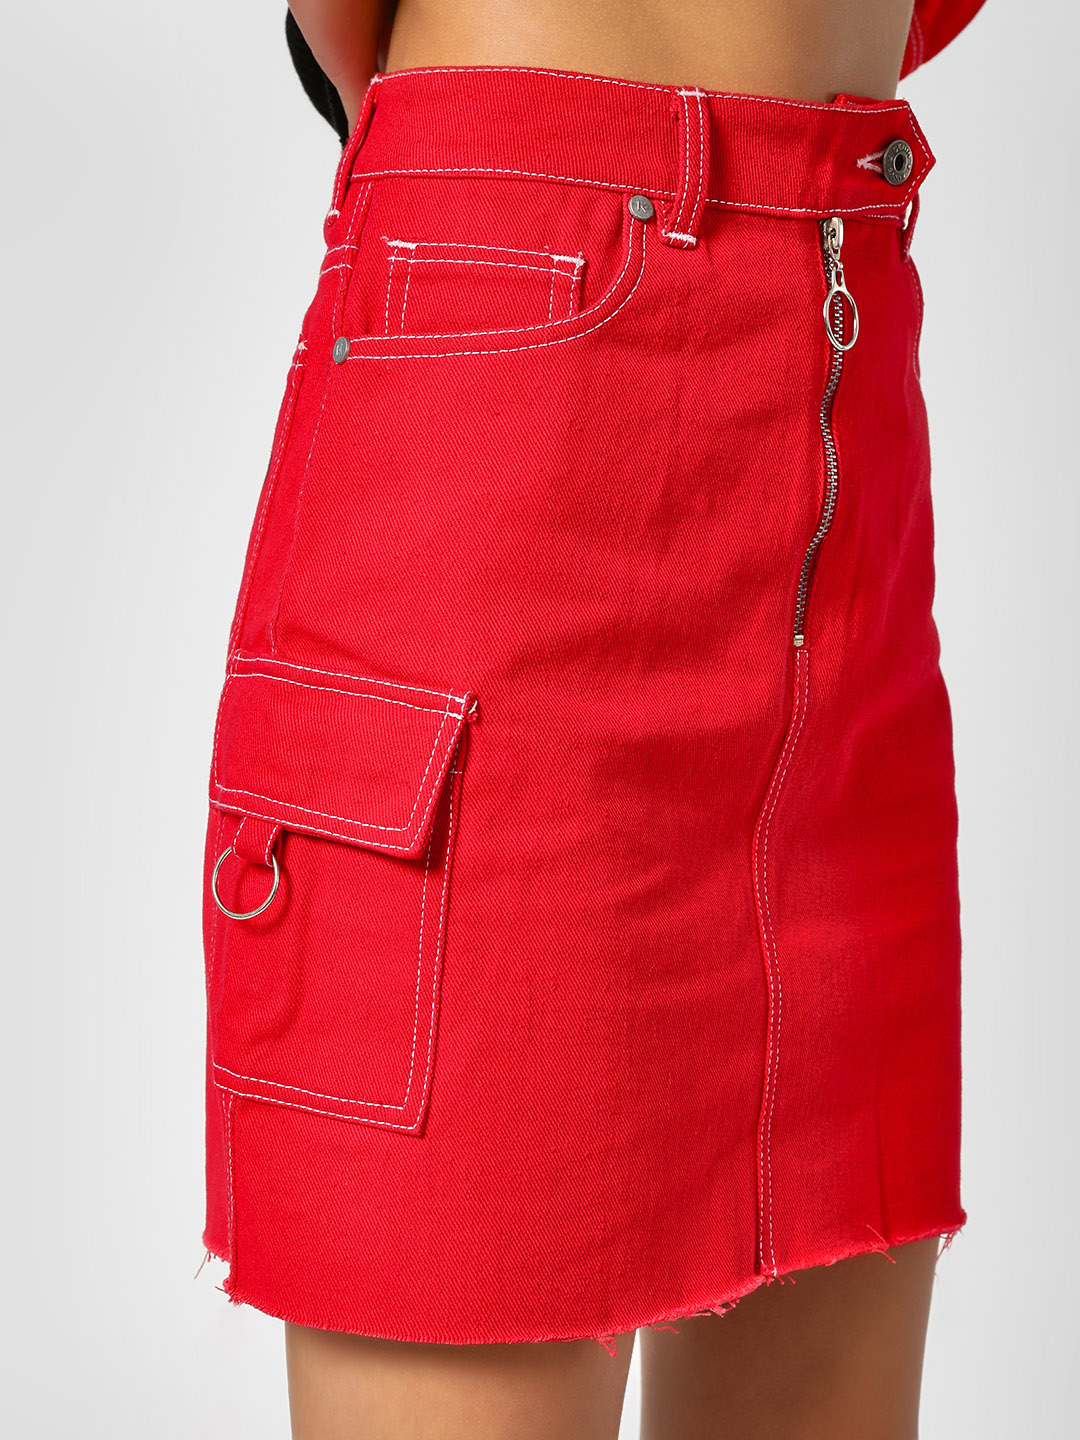 united kingdom speical offer most reliable Buy K Denim Red KOOVS Raw Hem Mini Denim Skirt for Girls ...